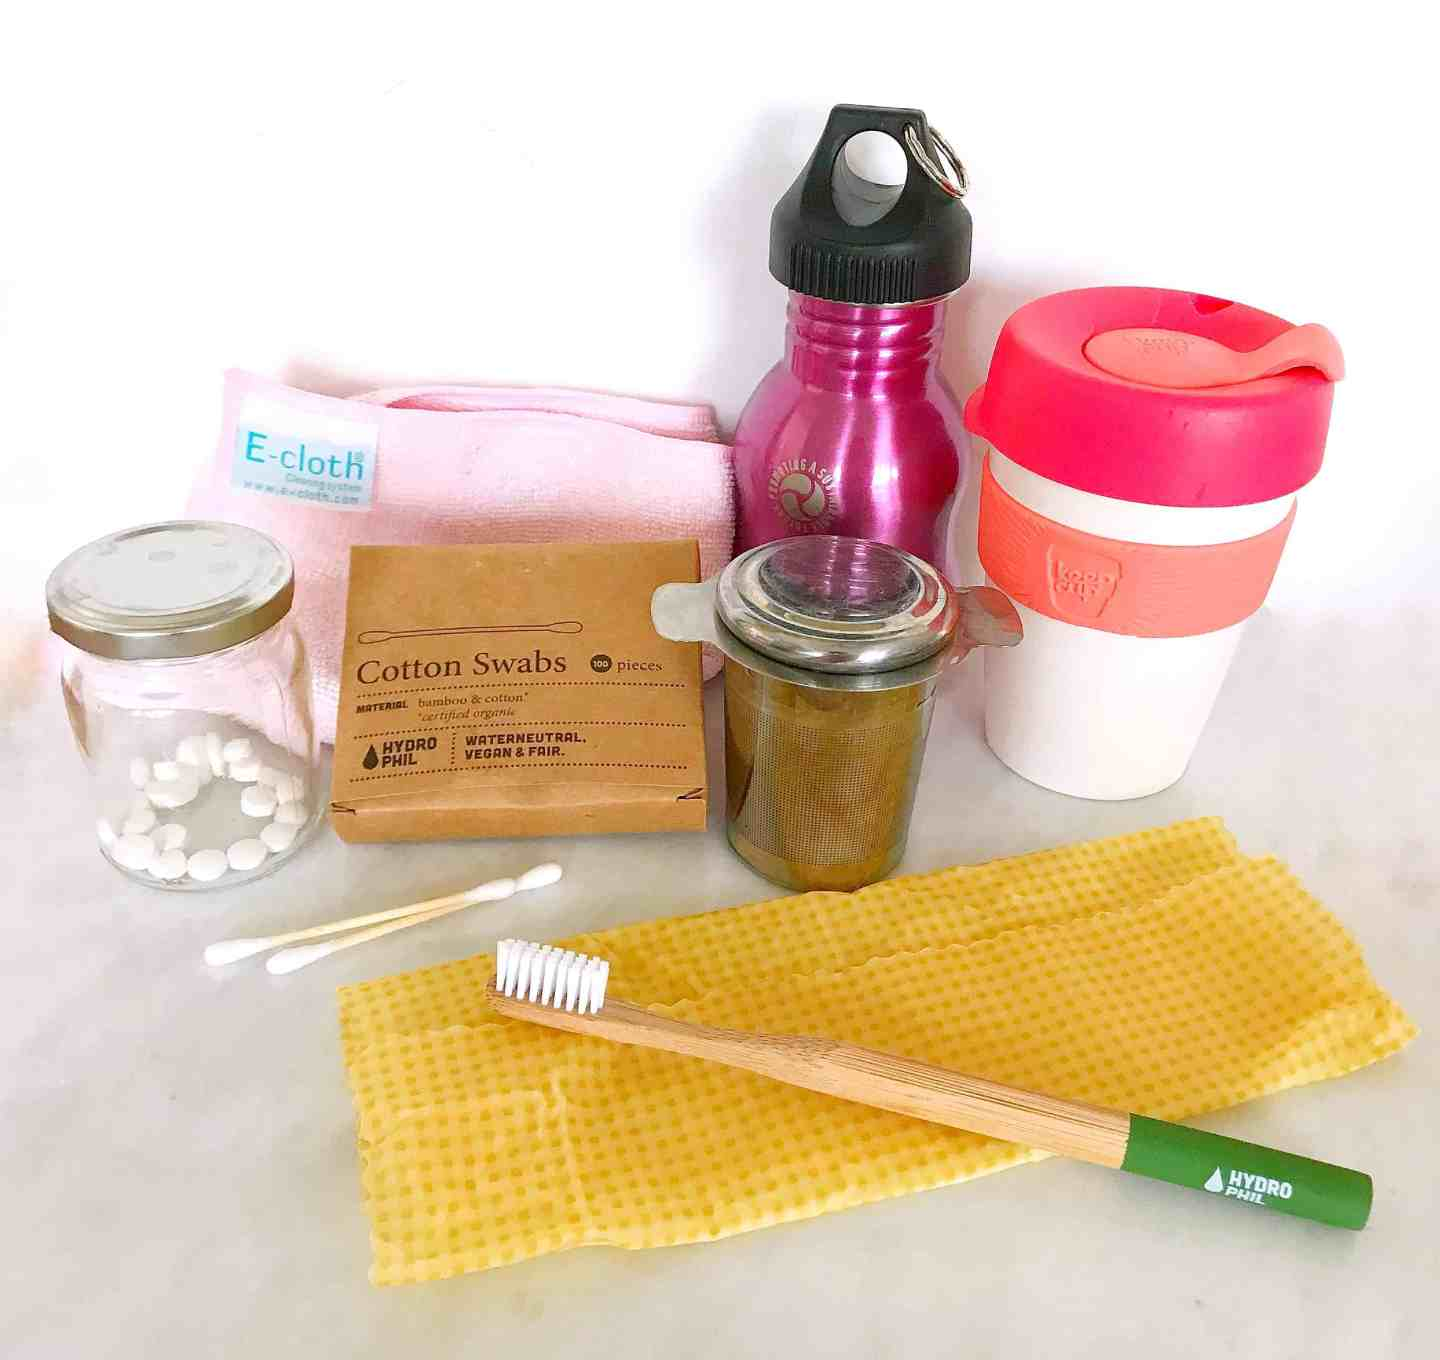 10 Easy Swaps to Reduce Waste